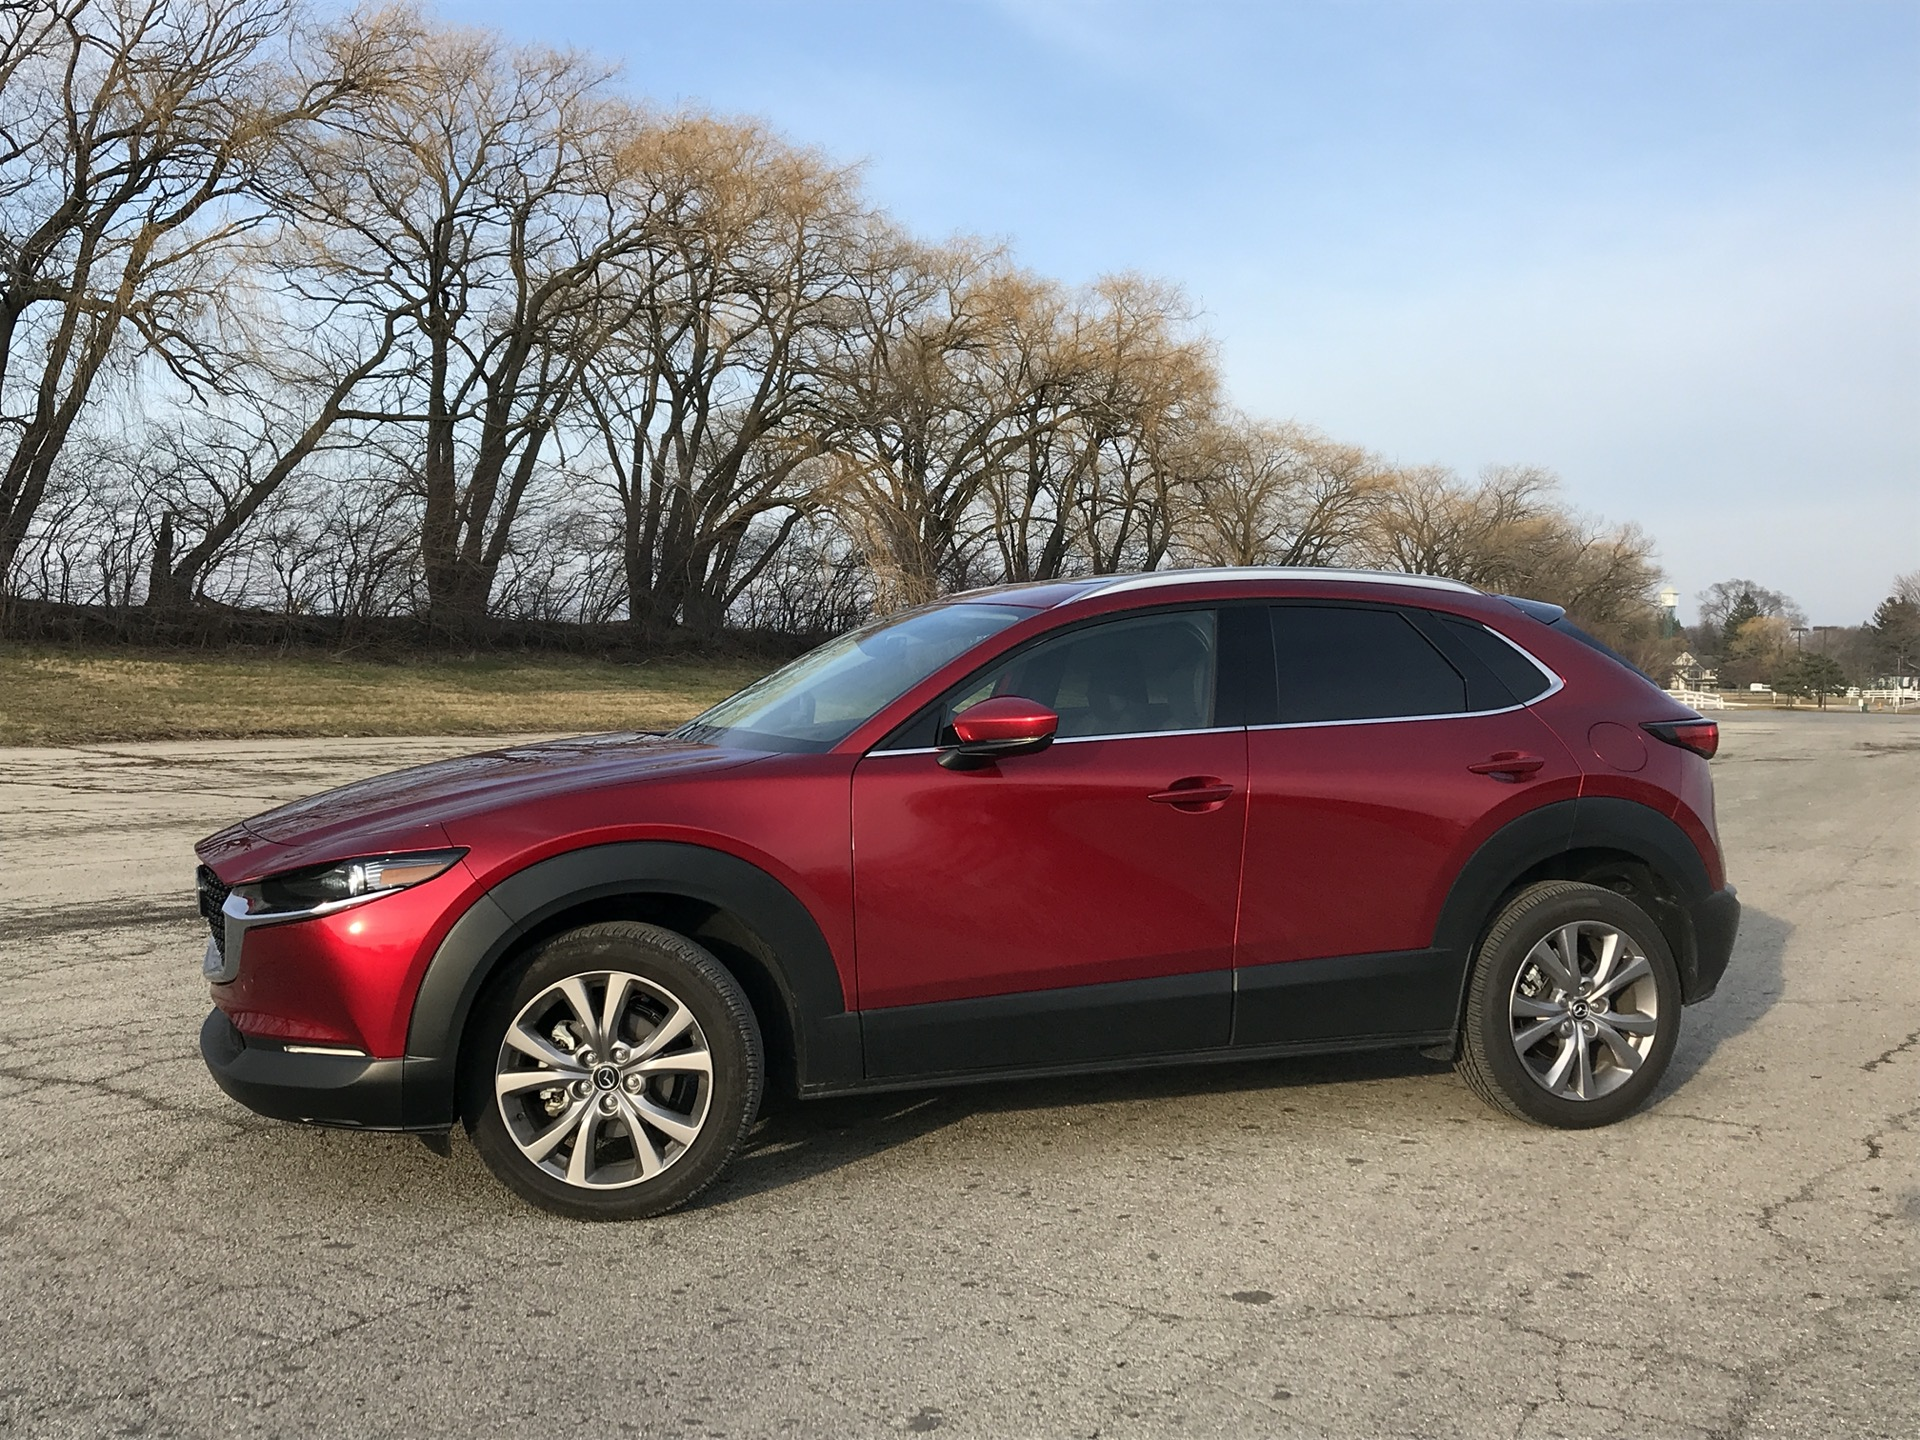 2020 CX-30 is Mazda's better, larger small crossover